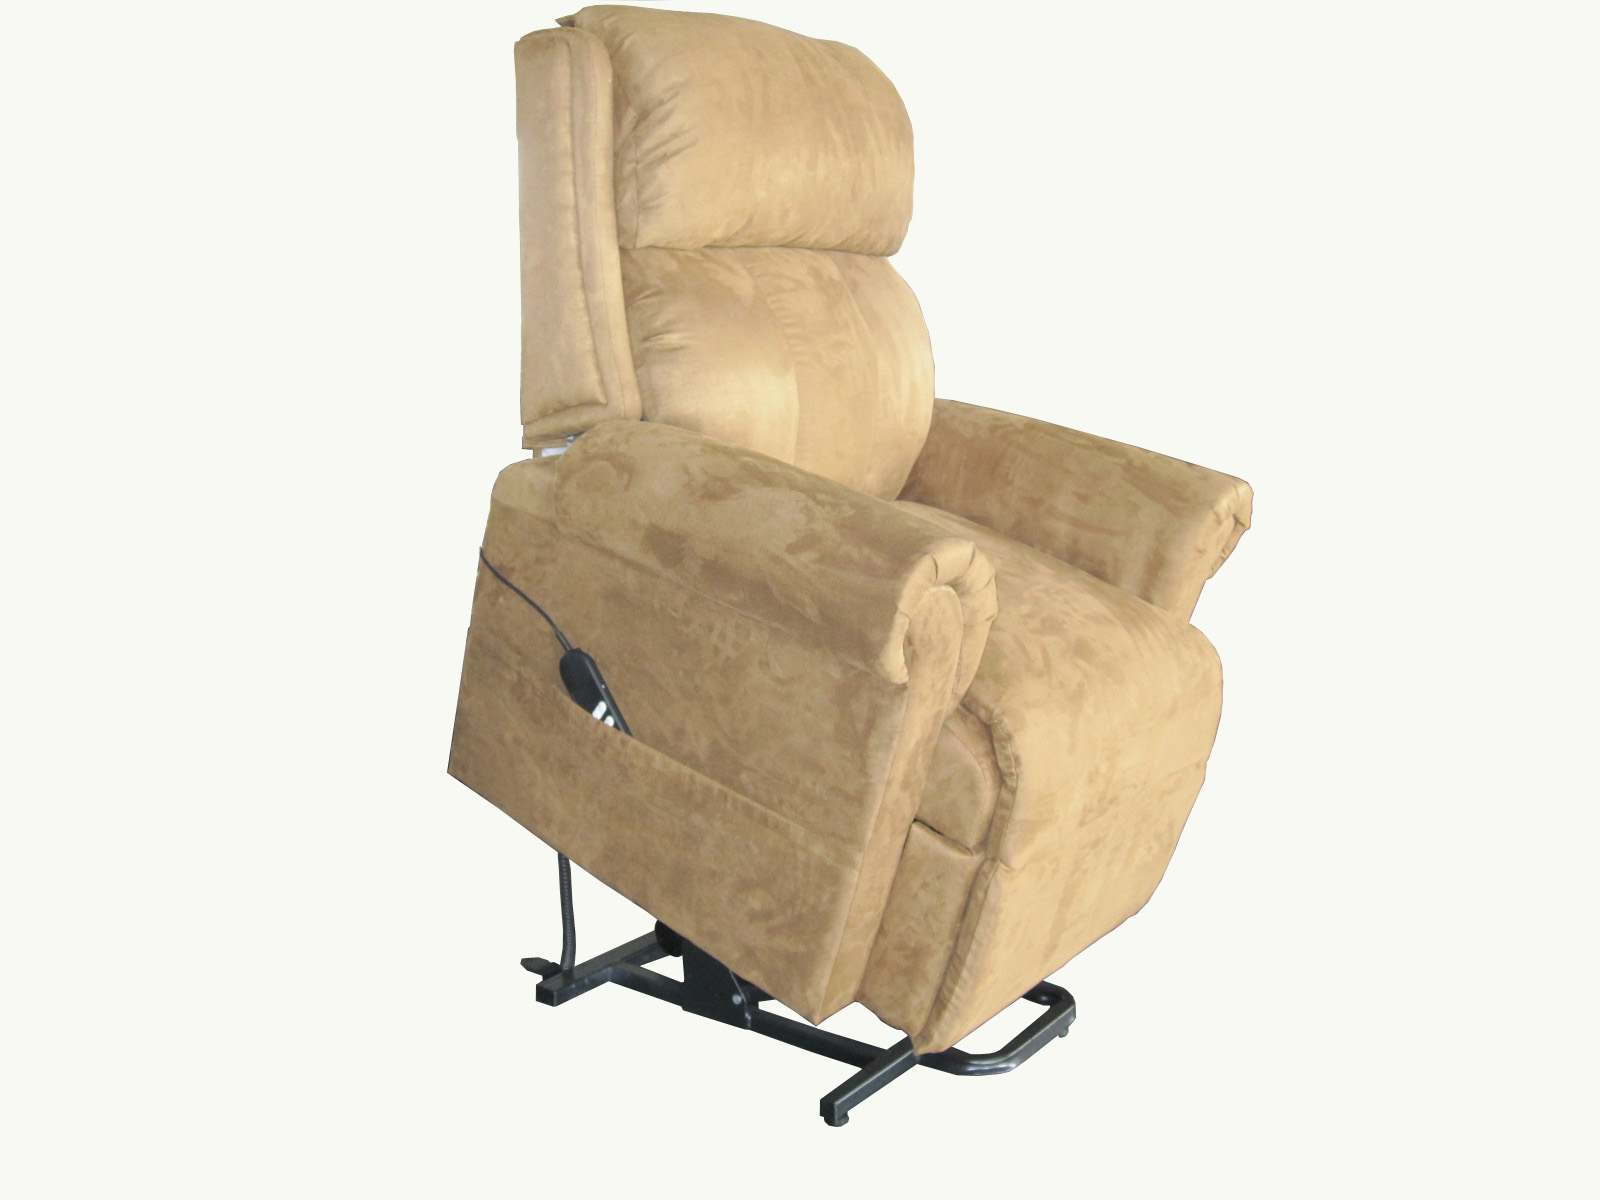 Furniture Cream Power Lift Recliners With Arms For Living Room